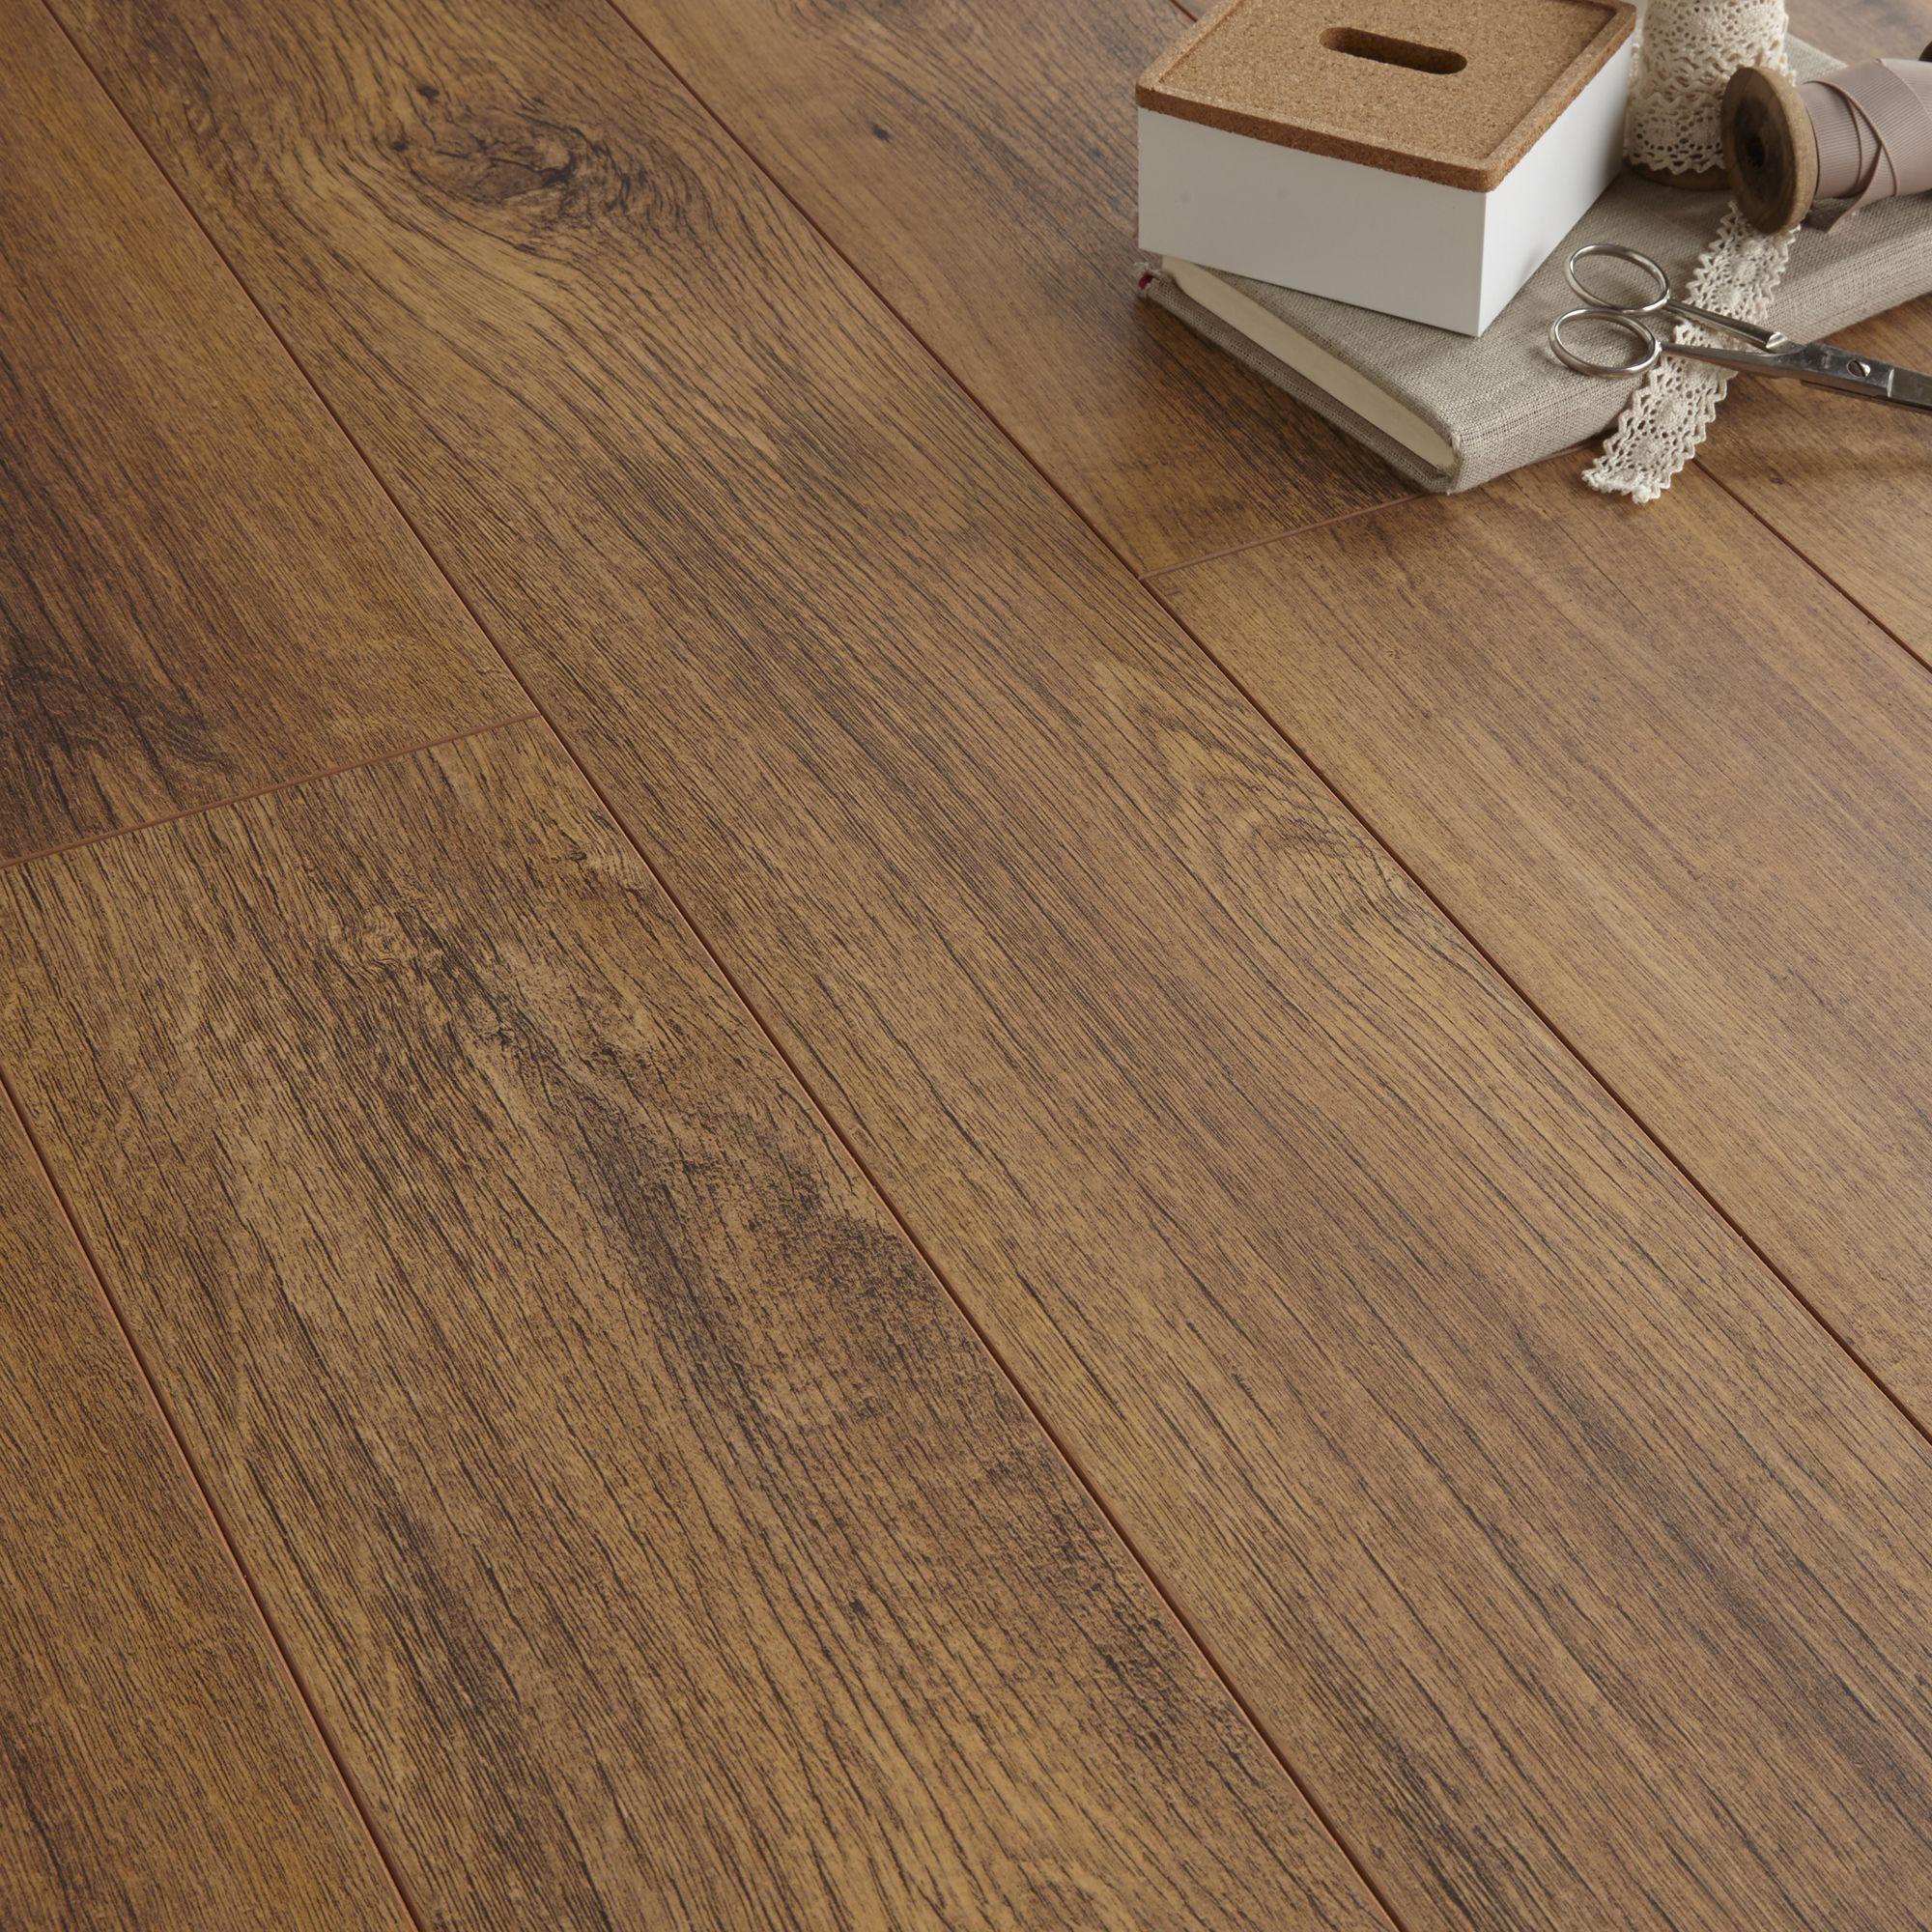 Arpeggio Natural Tuscany Olive Effect 2 Strip Laminate Flooring Pack